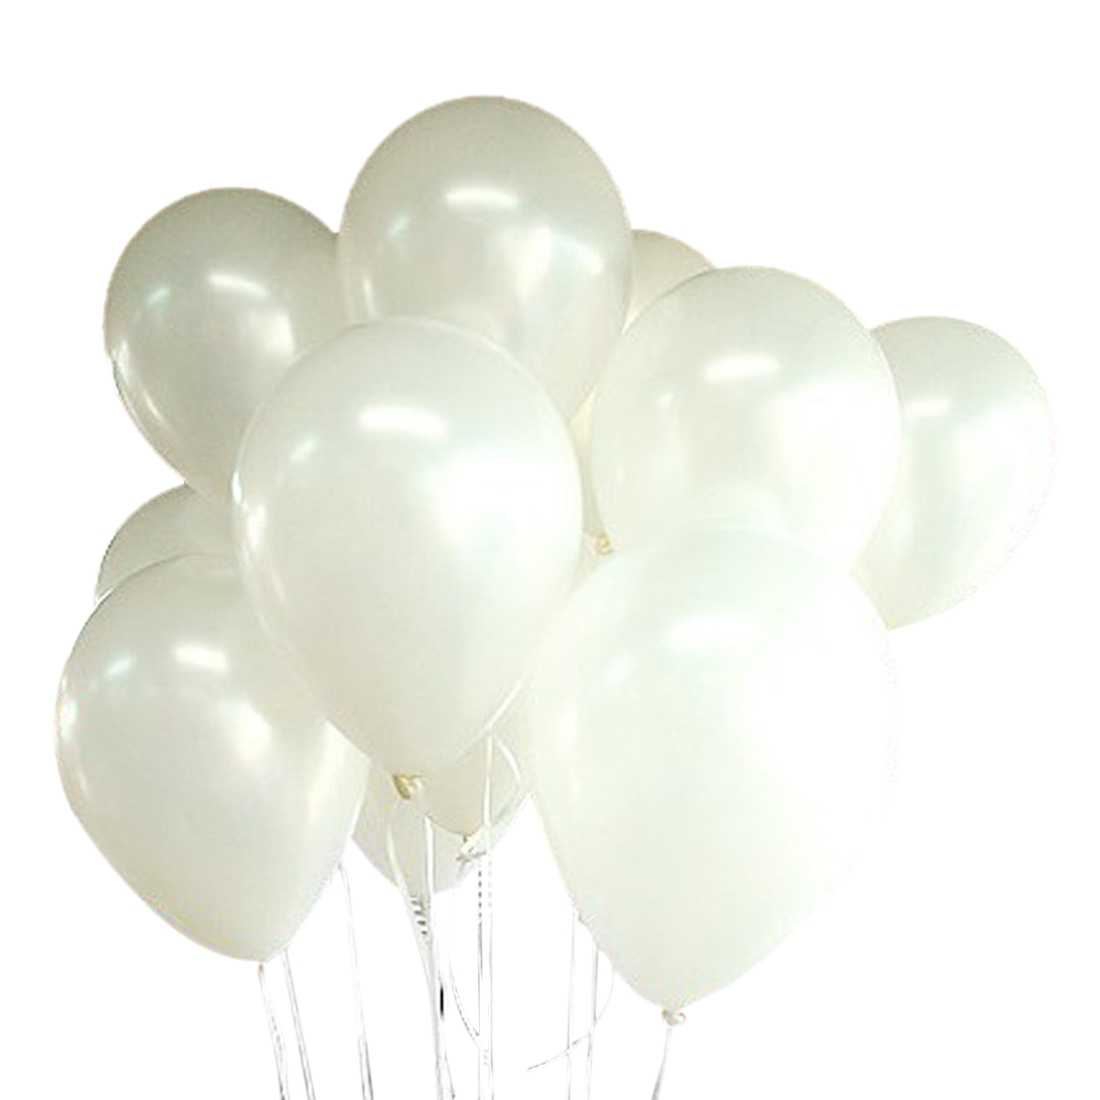 100 Balloons Birthday Wedding Party Decoration Club Balloons 25 cm Color: white